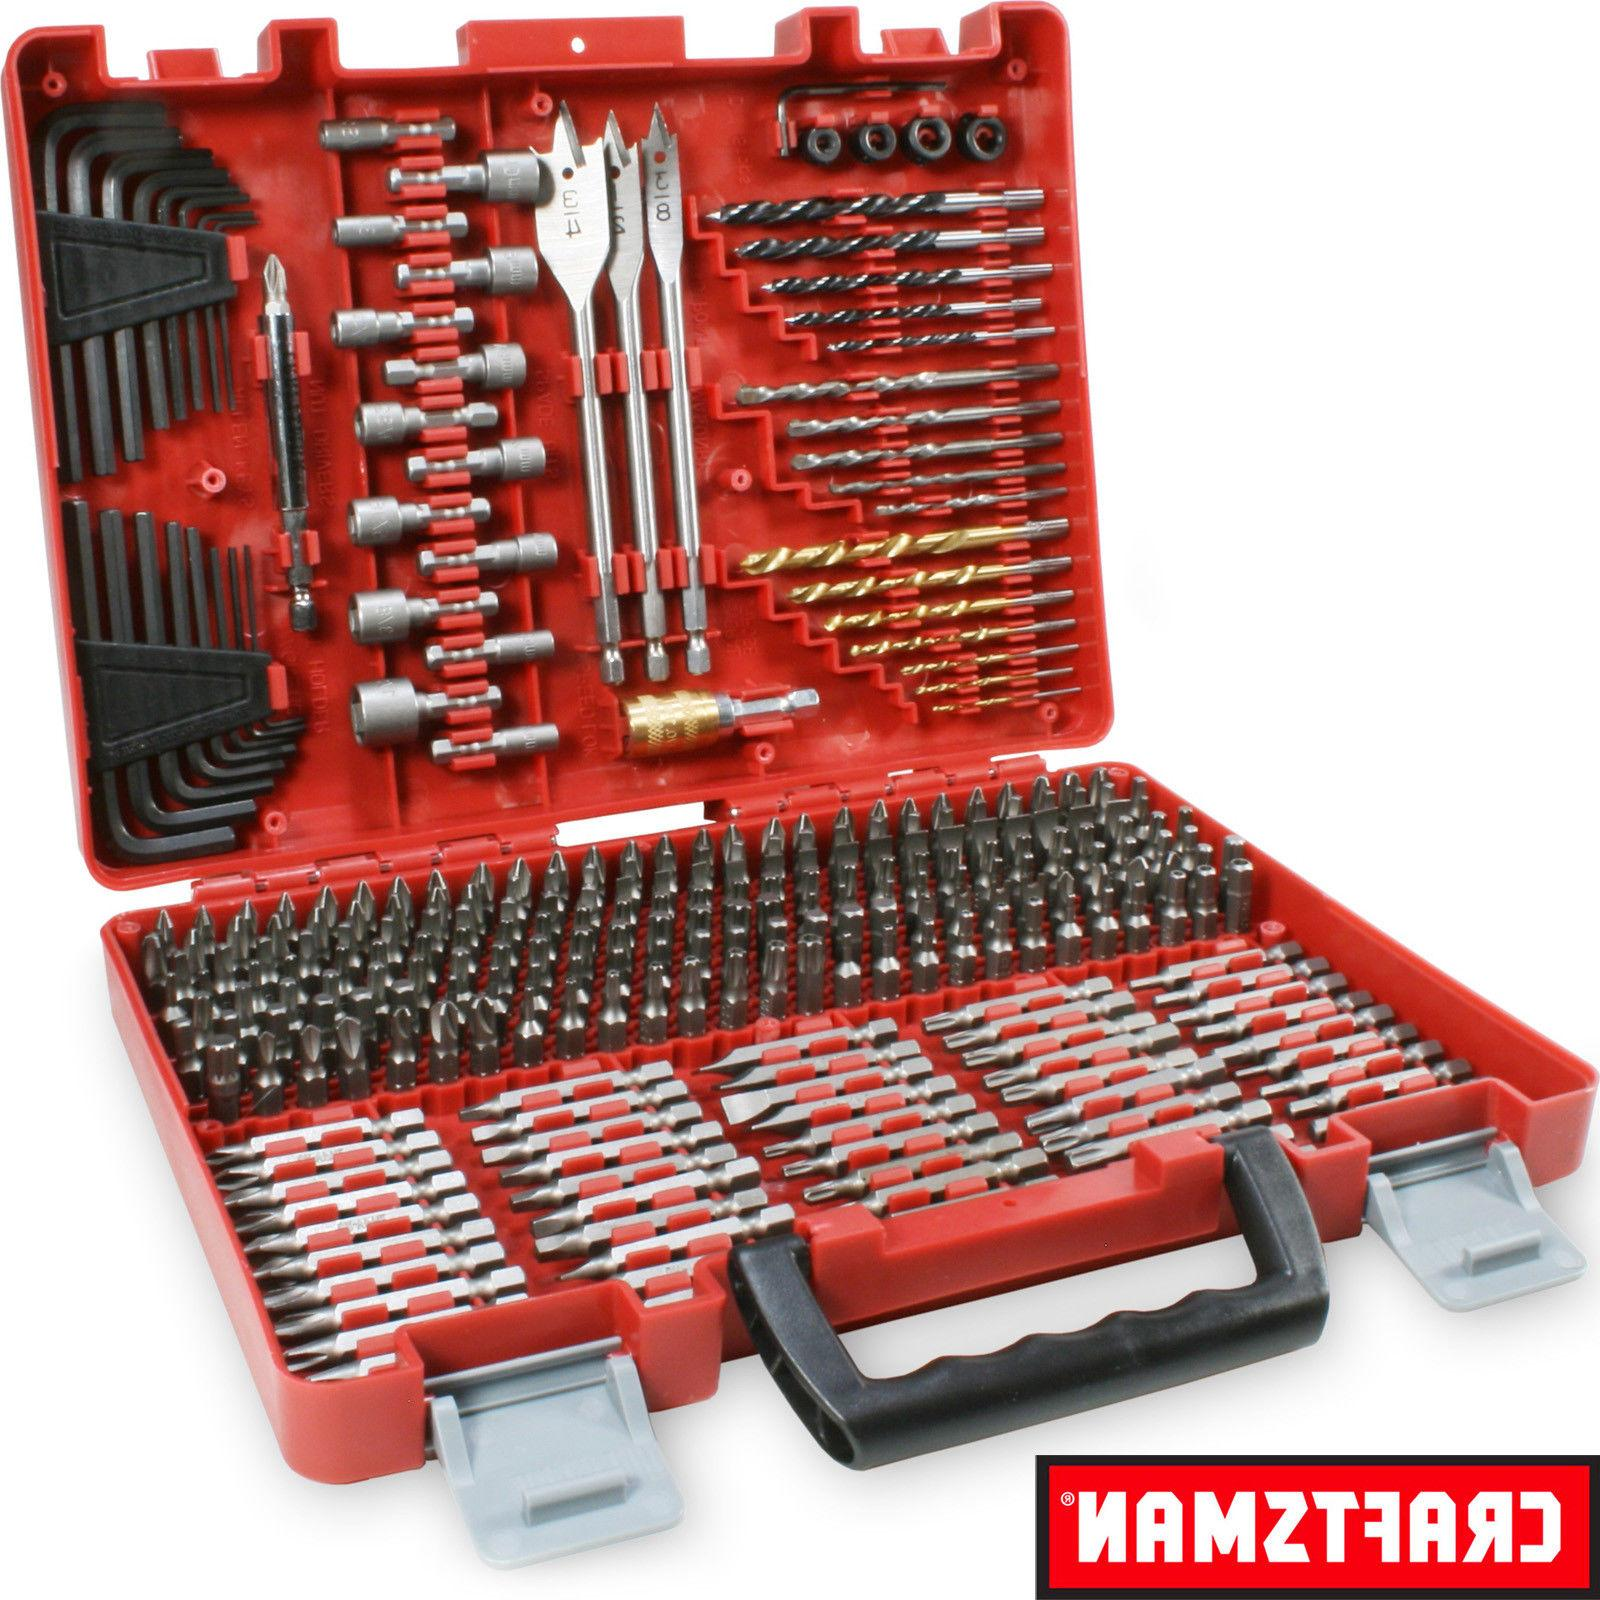 NEW Craftsman 300 Piece Drill Drive Screwdriver Bit Set Acce